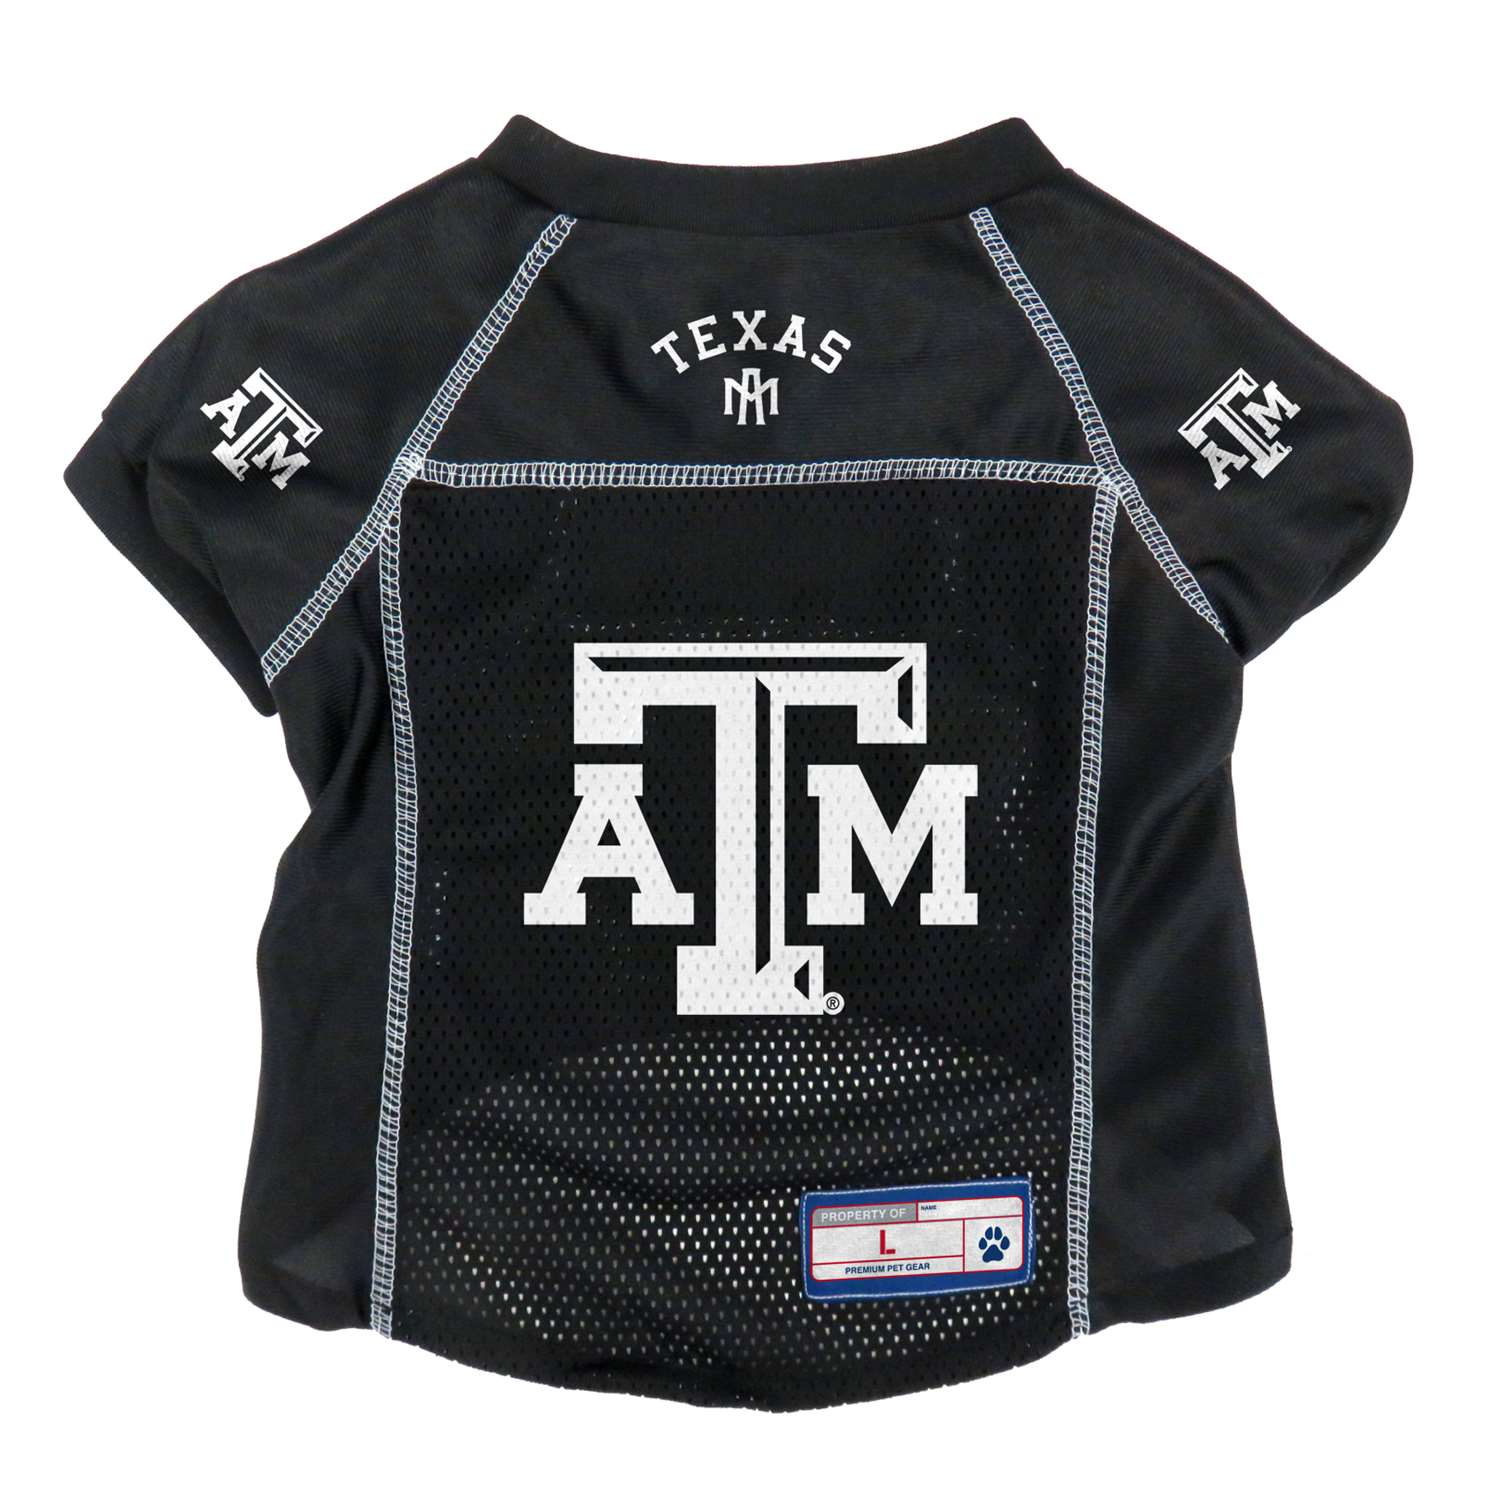 Ncaa College College Of New Jersey Tcnj Lions Pet Fan Gear - 120134-txam-l - Texas A & M University Pet Jersey 120134-TXAM-L